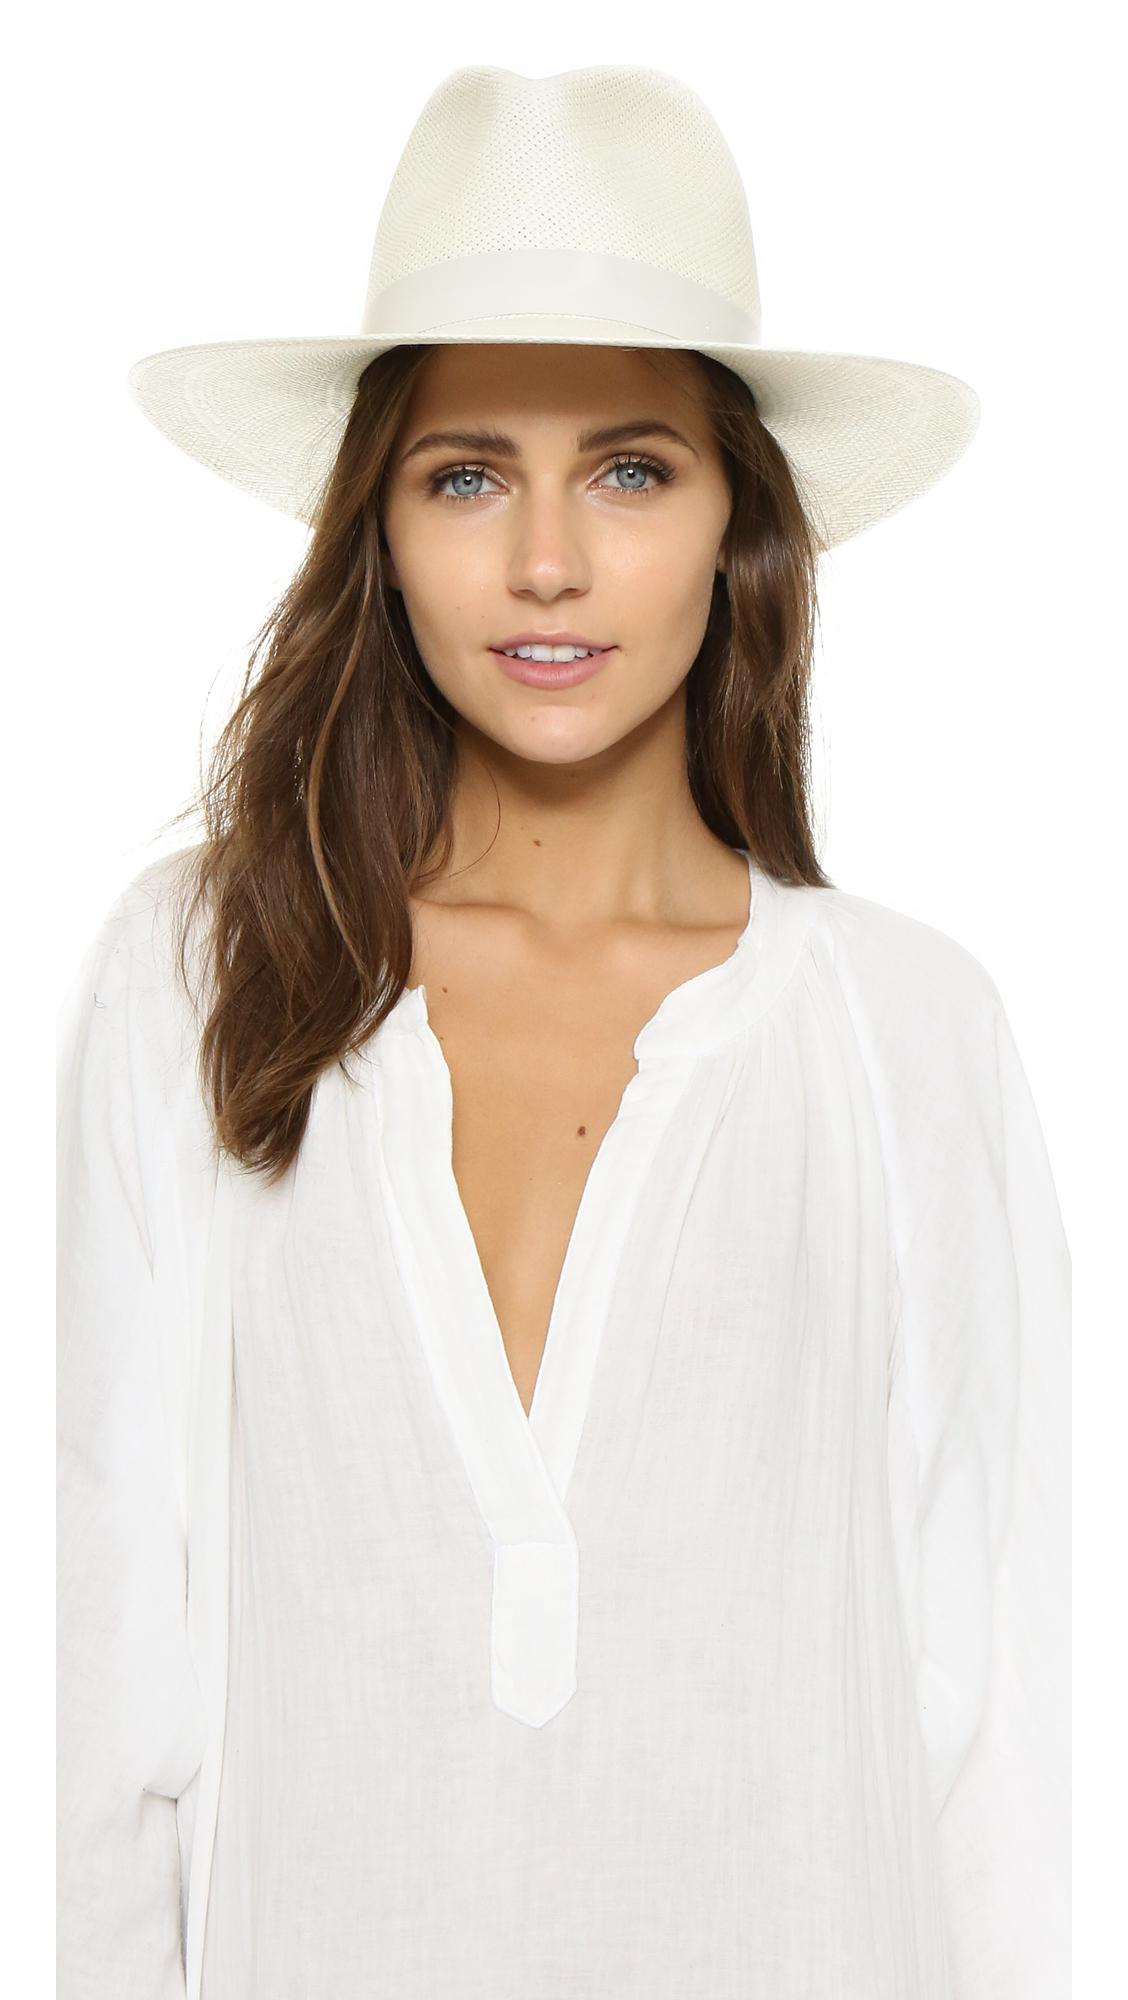 Lyst - Janessa Leone Aisley Short Brimmed Panama Hat in White a2db5cc9f92